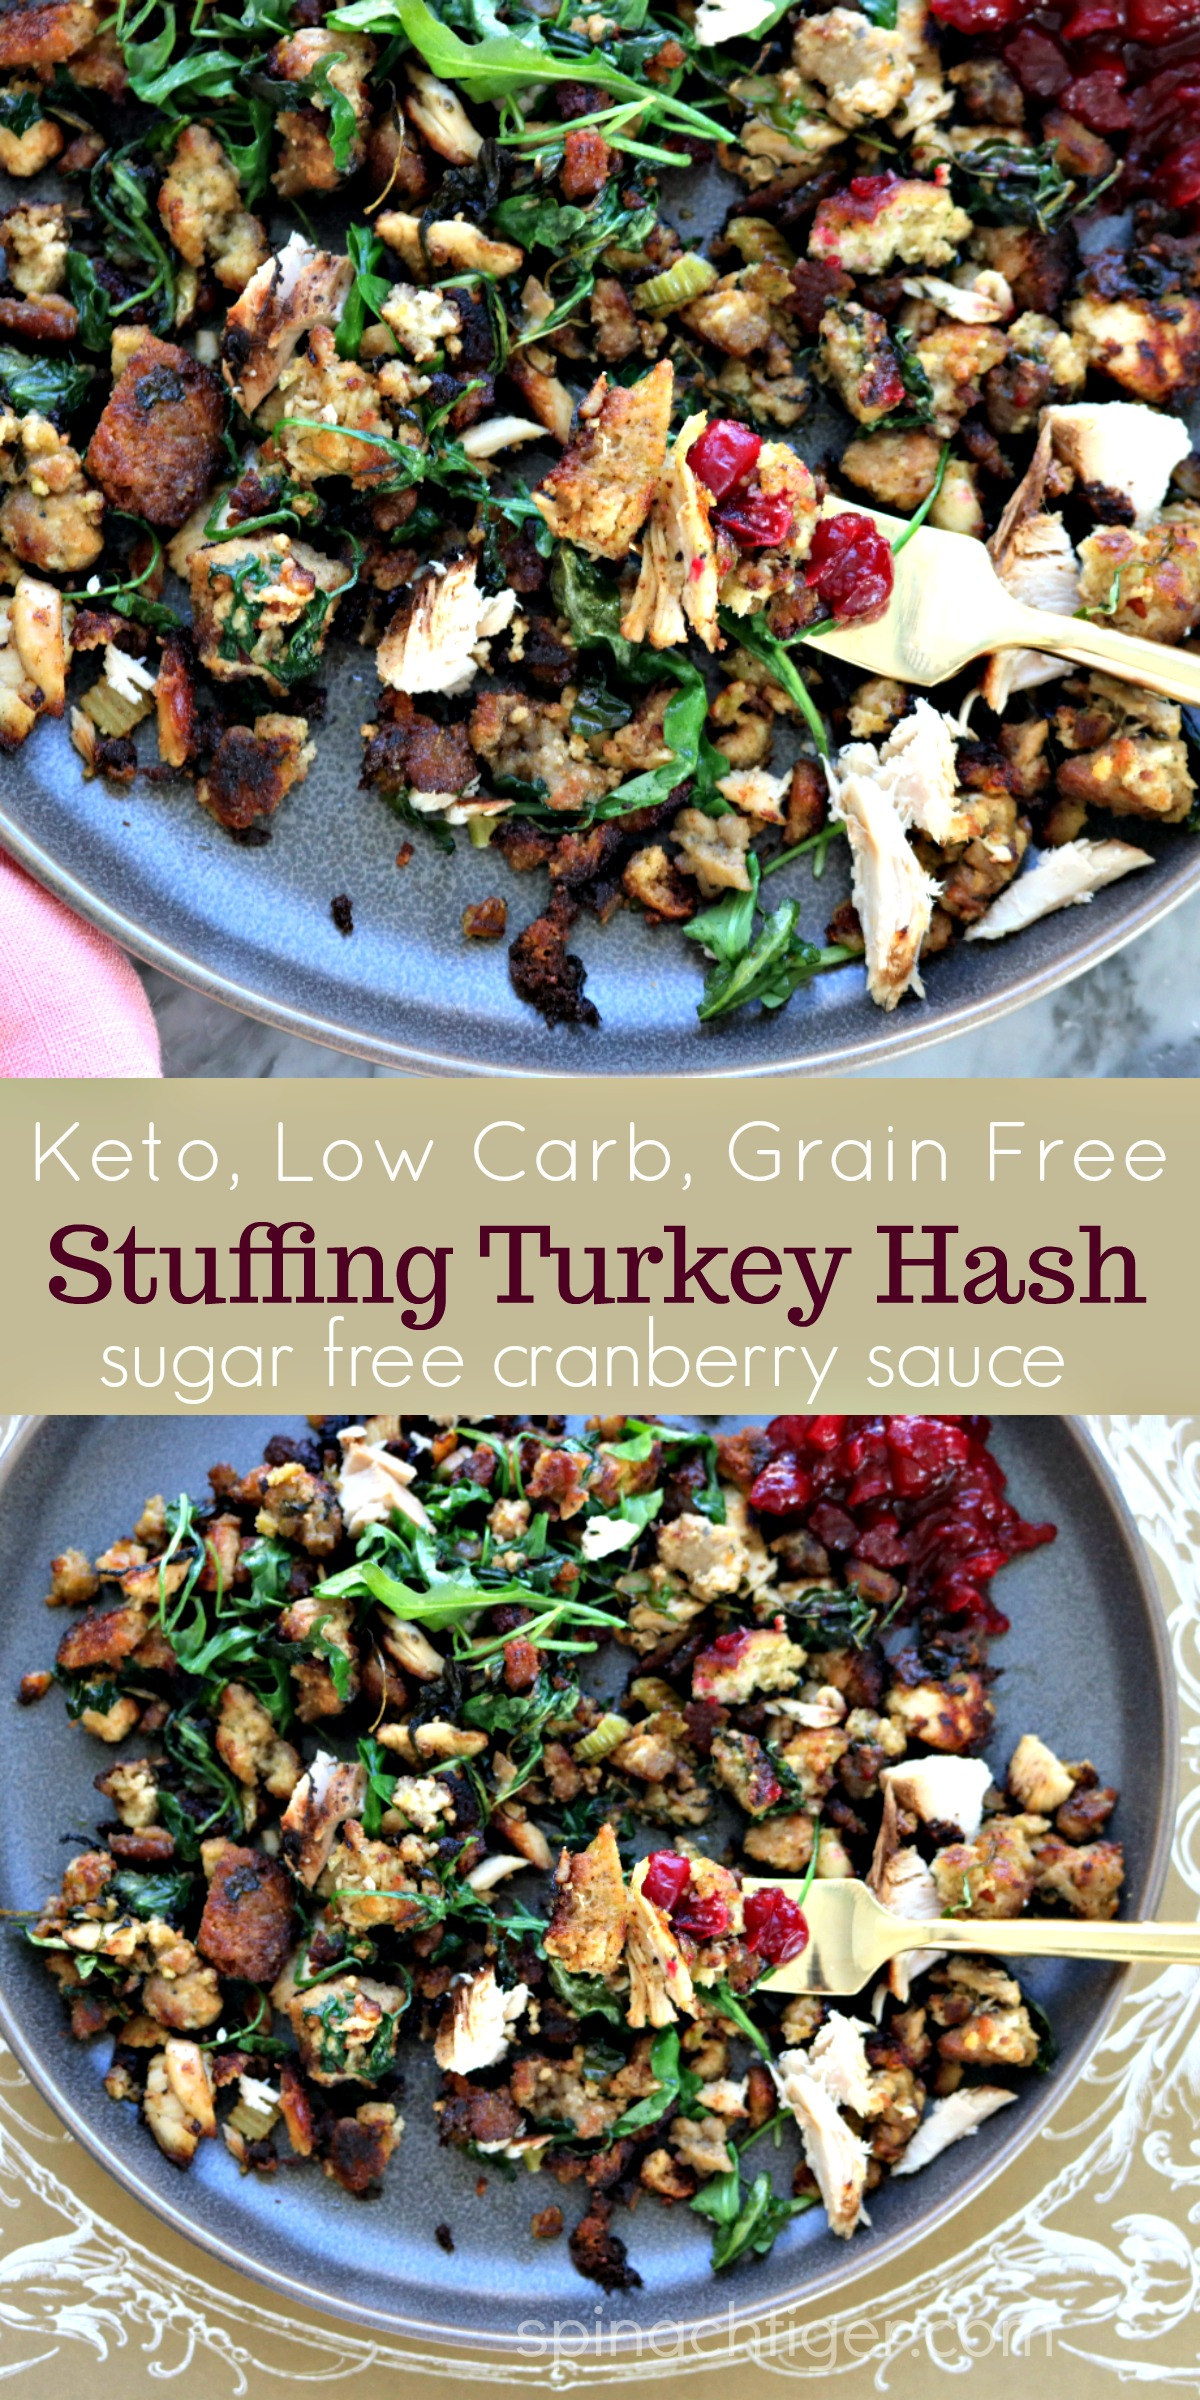 Keto Stuffing Hash from Thanksgiving Leftovers by Spinach Tiger